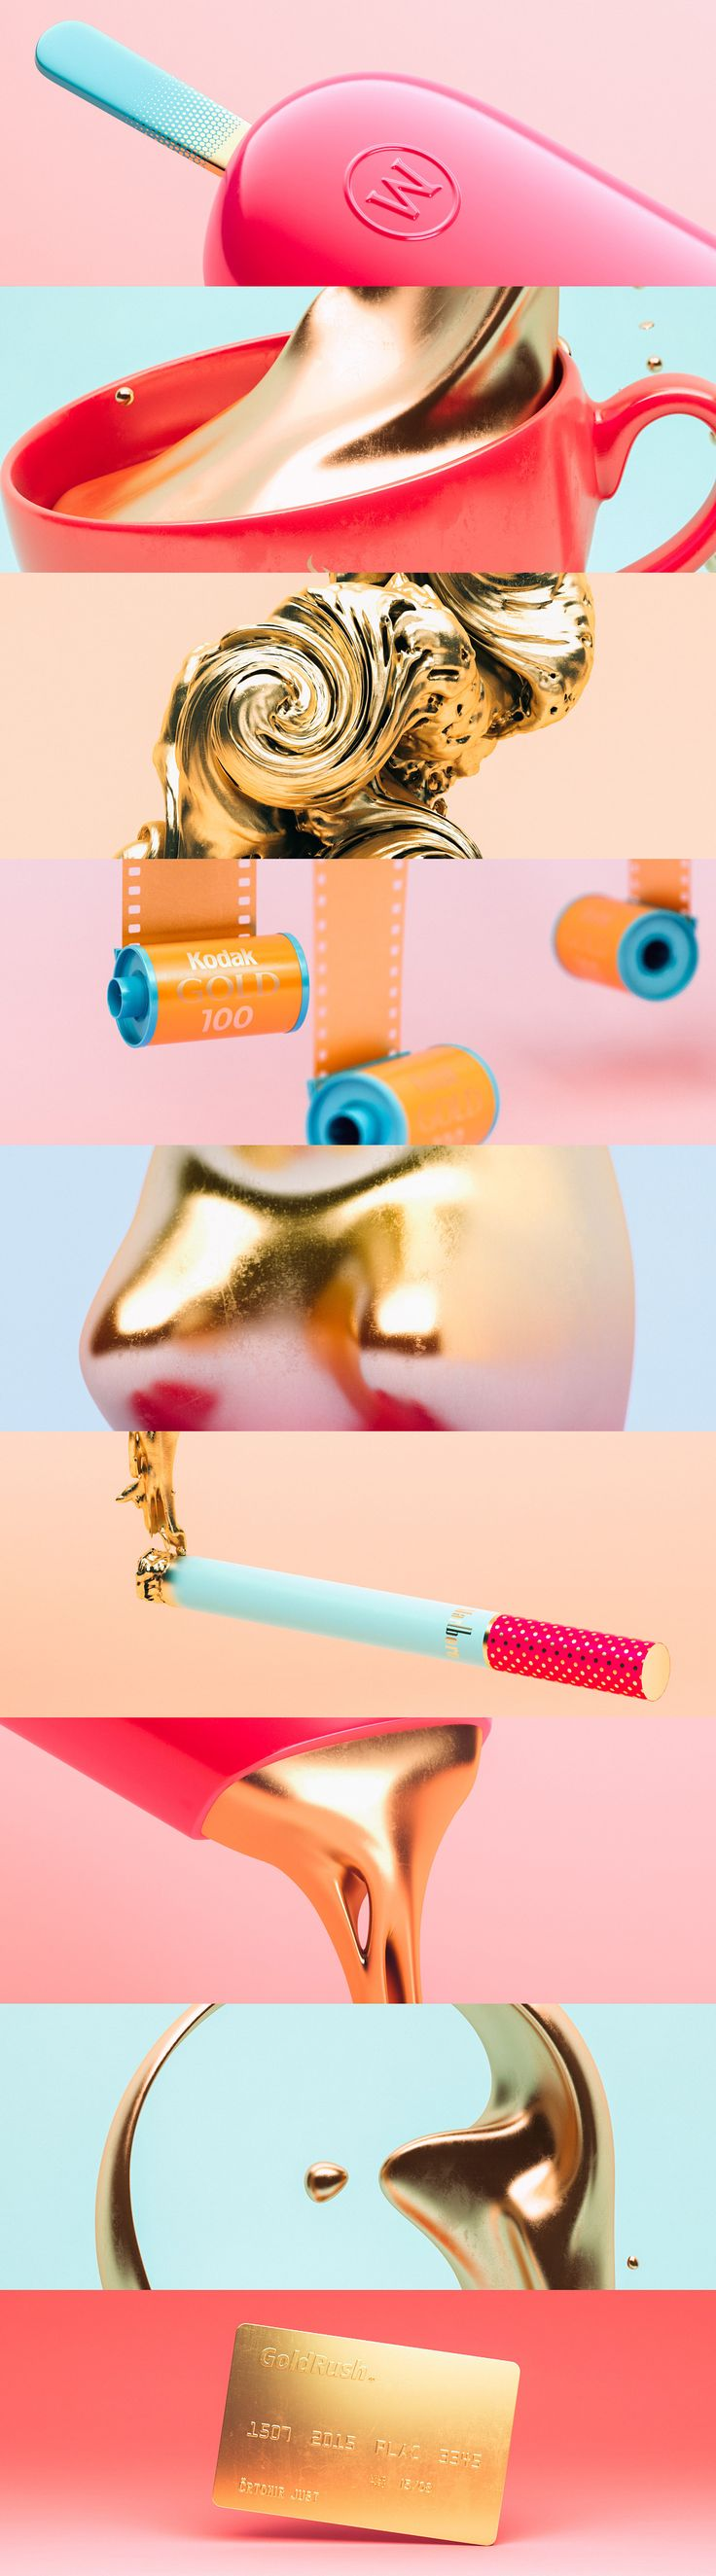 sweet style frames - dripping gold - 3D Design - GoldRush | Abduzeedo Design Inspiration